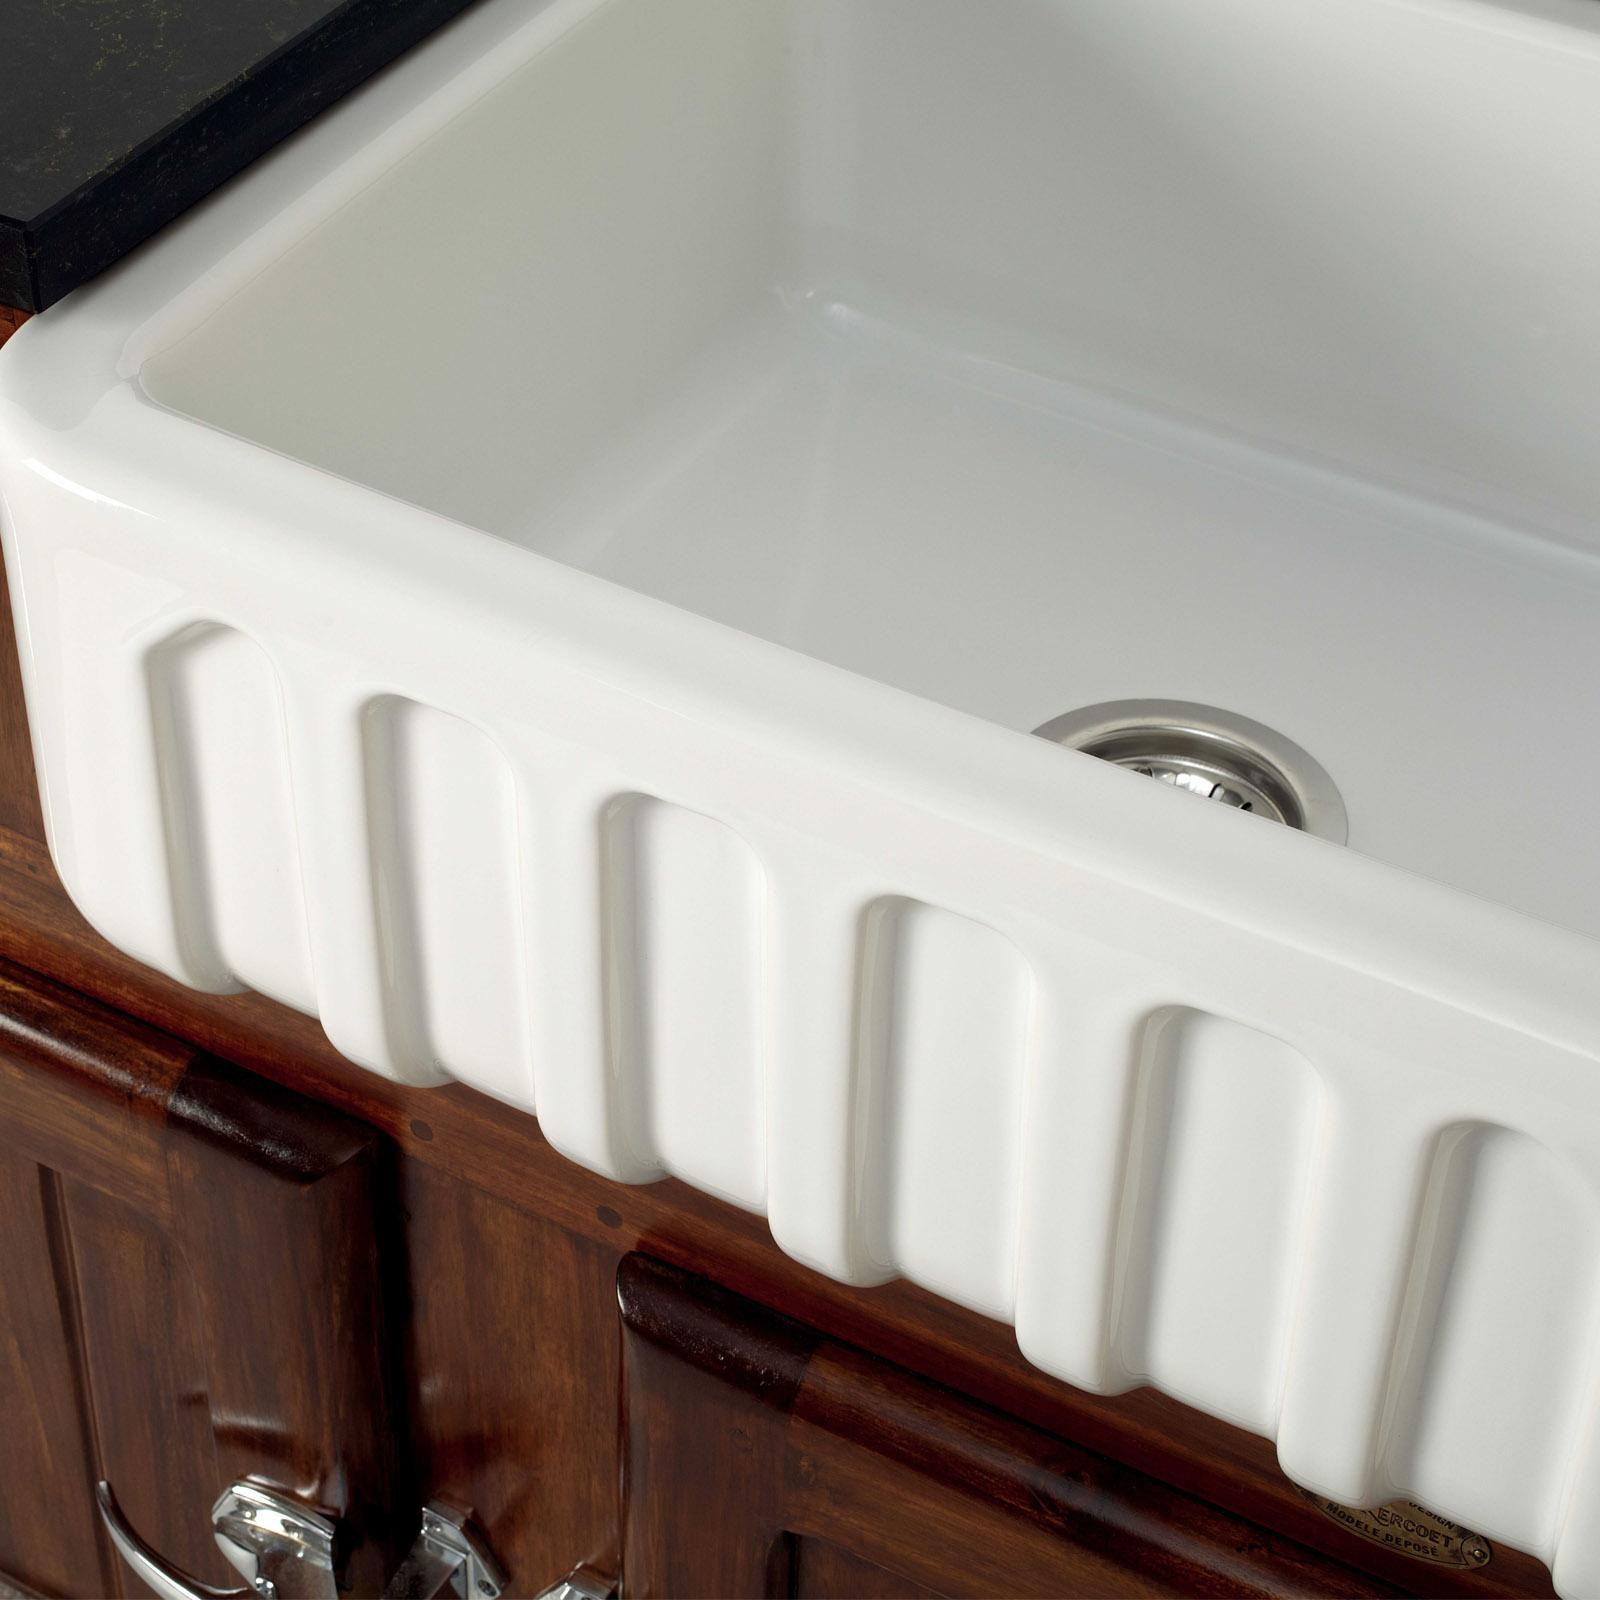 High-quality sink Louis I - single bowl, ceramic - ambience 1